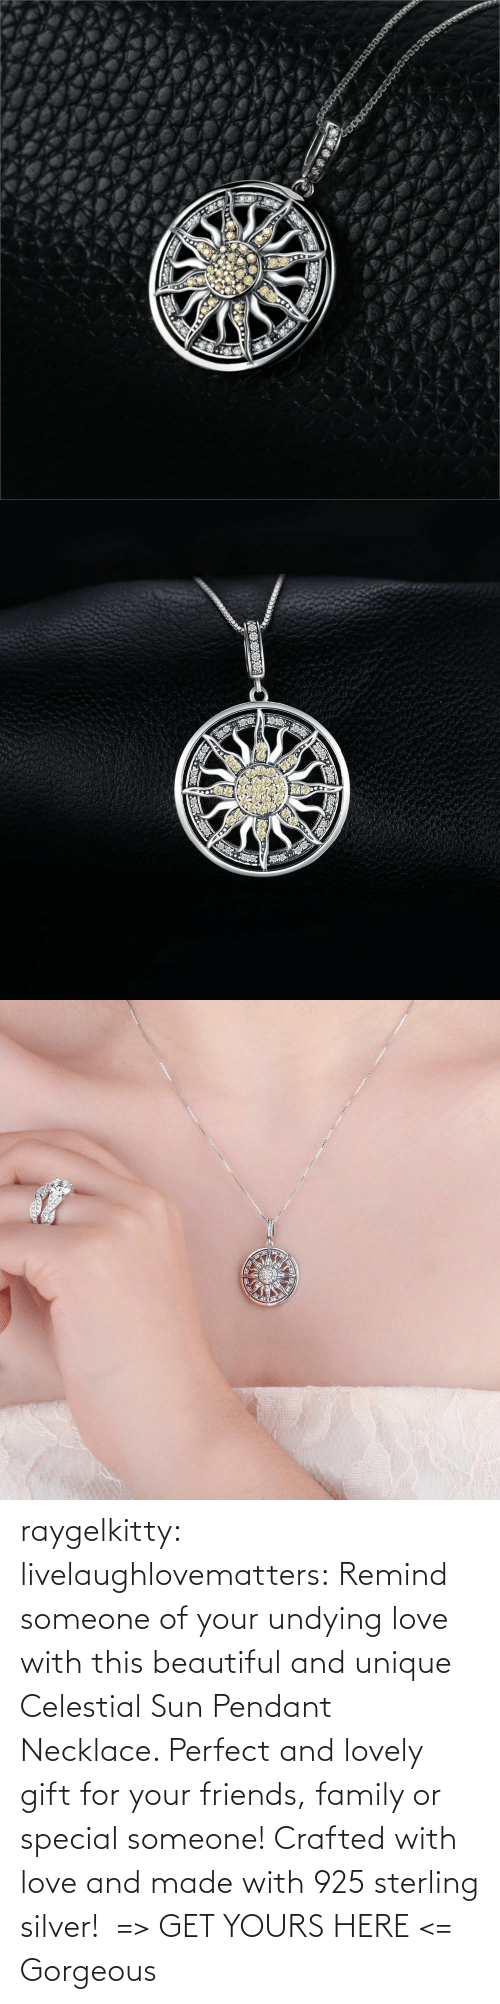 Silver: raygelkitty:  livelaughlovematters: Remind someone of your undying love with this beautiful and unique Celestial Sun Pendant Necklace. Perfect and lovely gift for your friends, family or special someone! Crafted with love and made with 925 sterling silver!  => GET YOURS HERE <=    Gorgeous